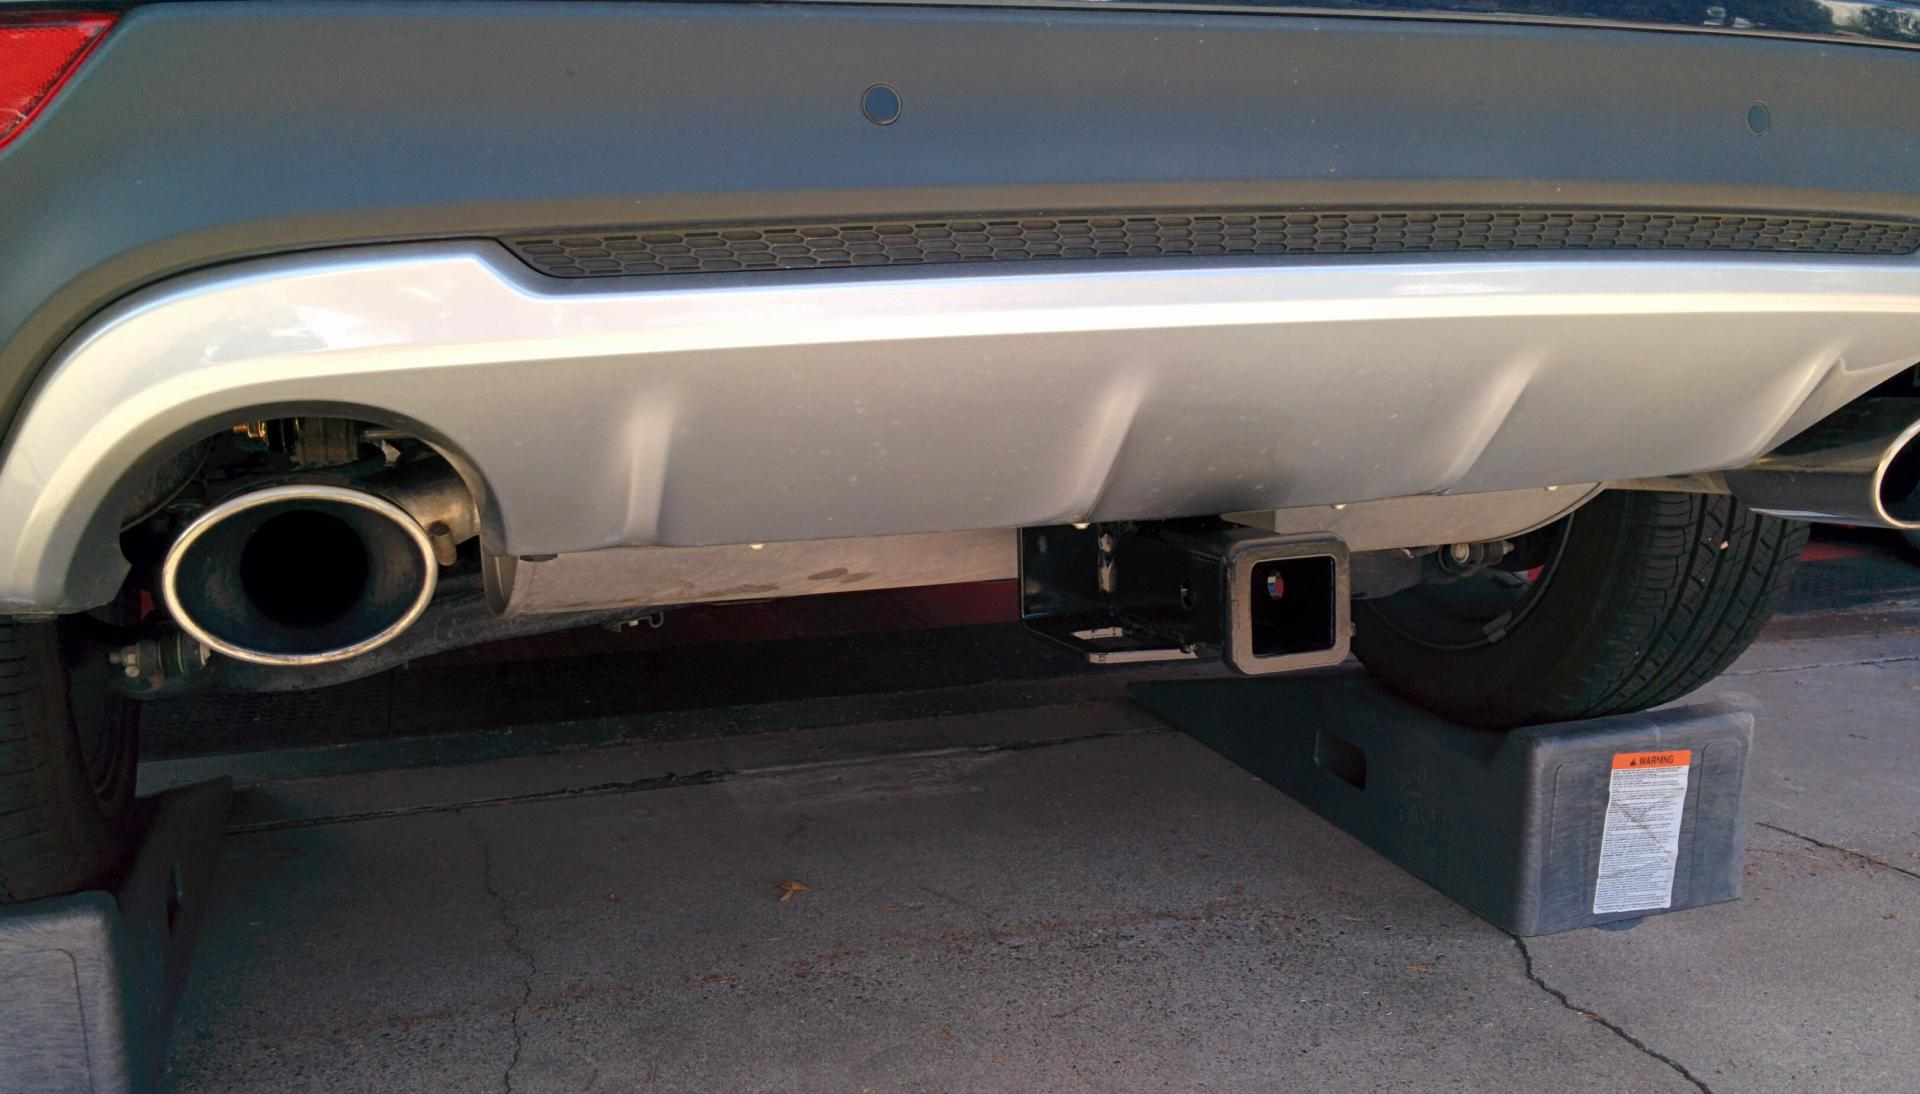 Trailer Lighting Kit Help Lincoln Mkc Forum Thread Install Wiring Harness Click Image For Larger Version Name Img 20160806 130437 Views 660 Size 1934